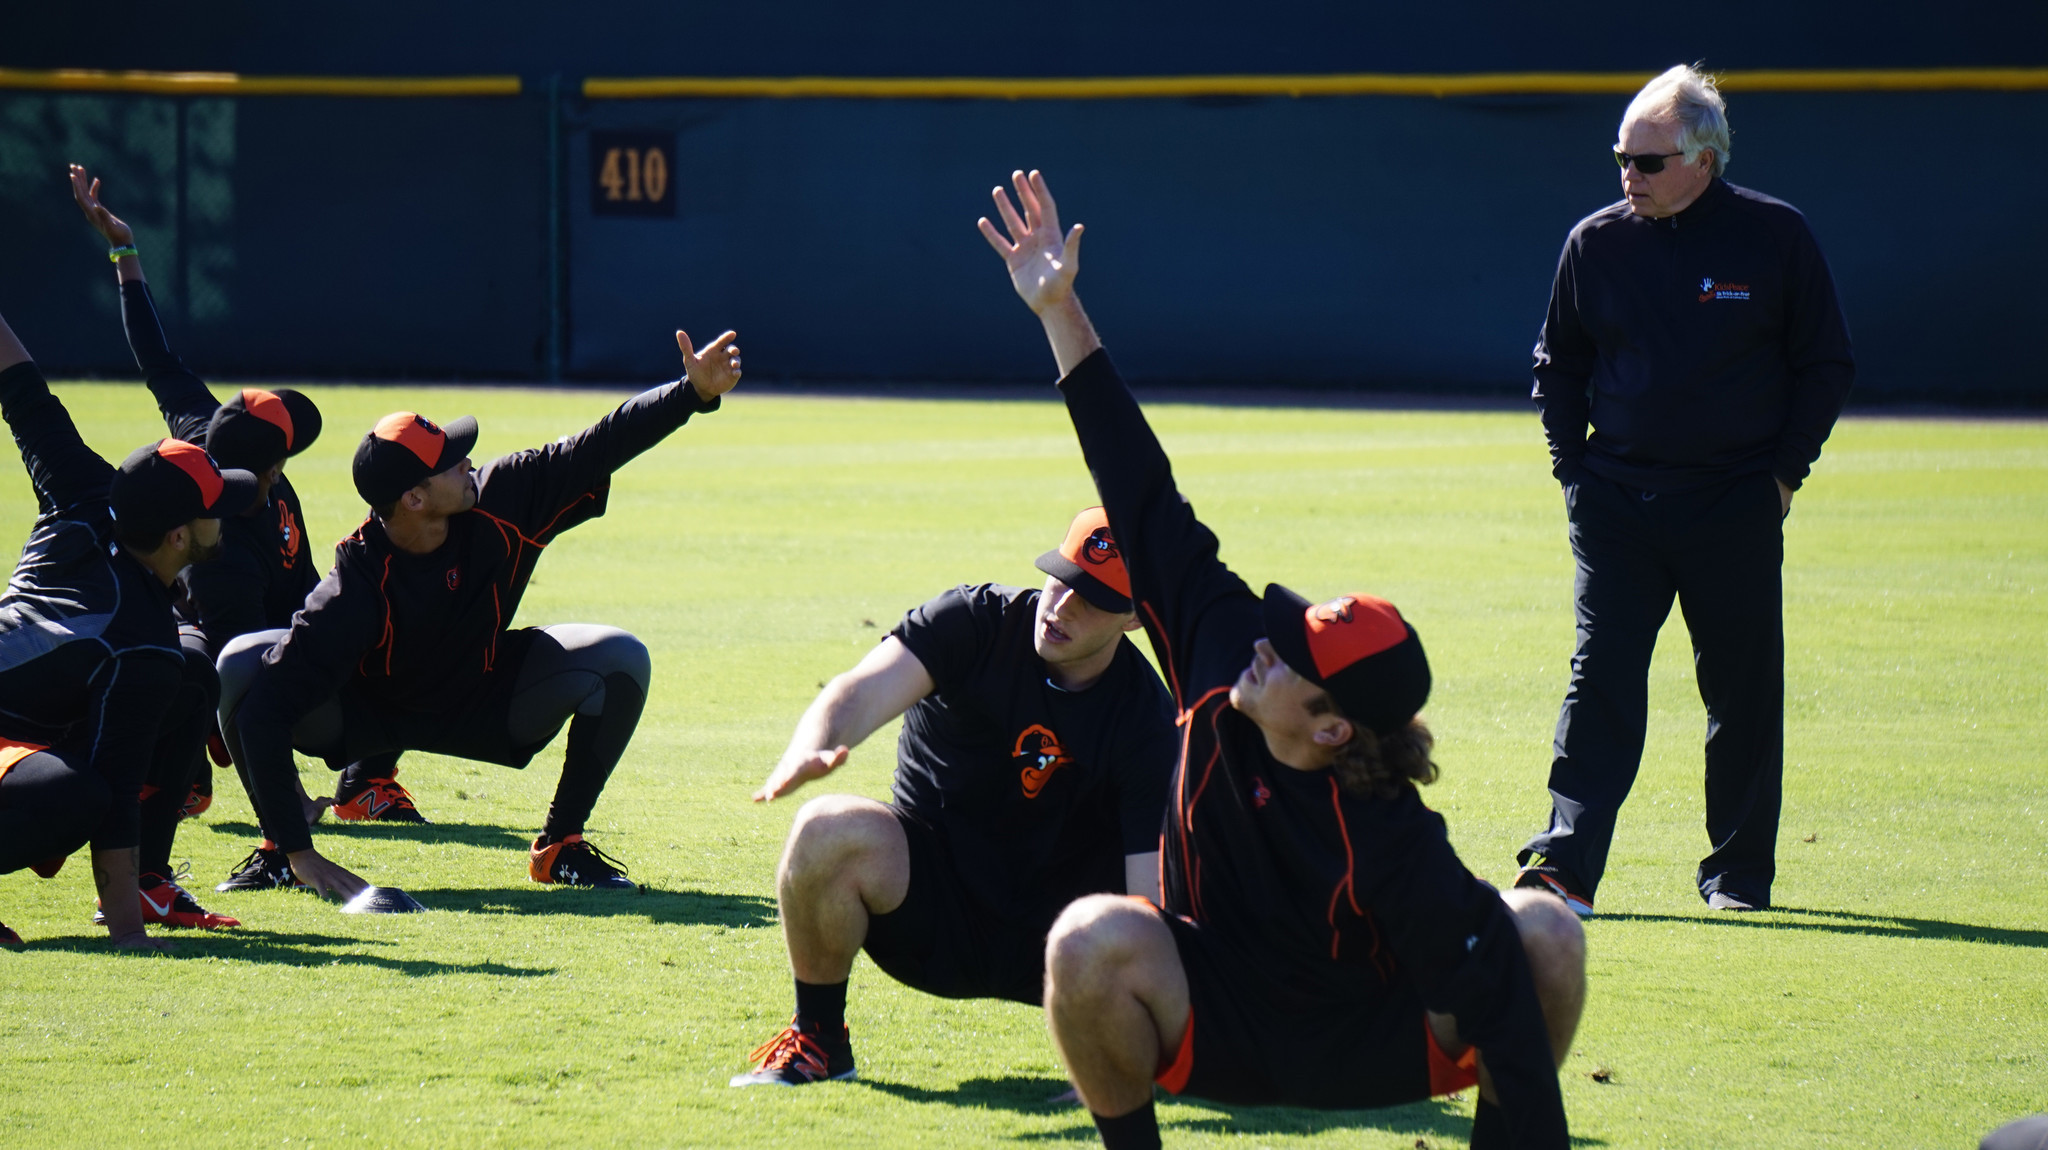 Bs-sp-orioles-spring-training-advance-0212-20170211